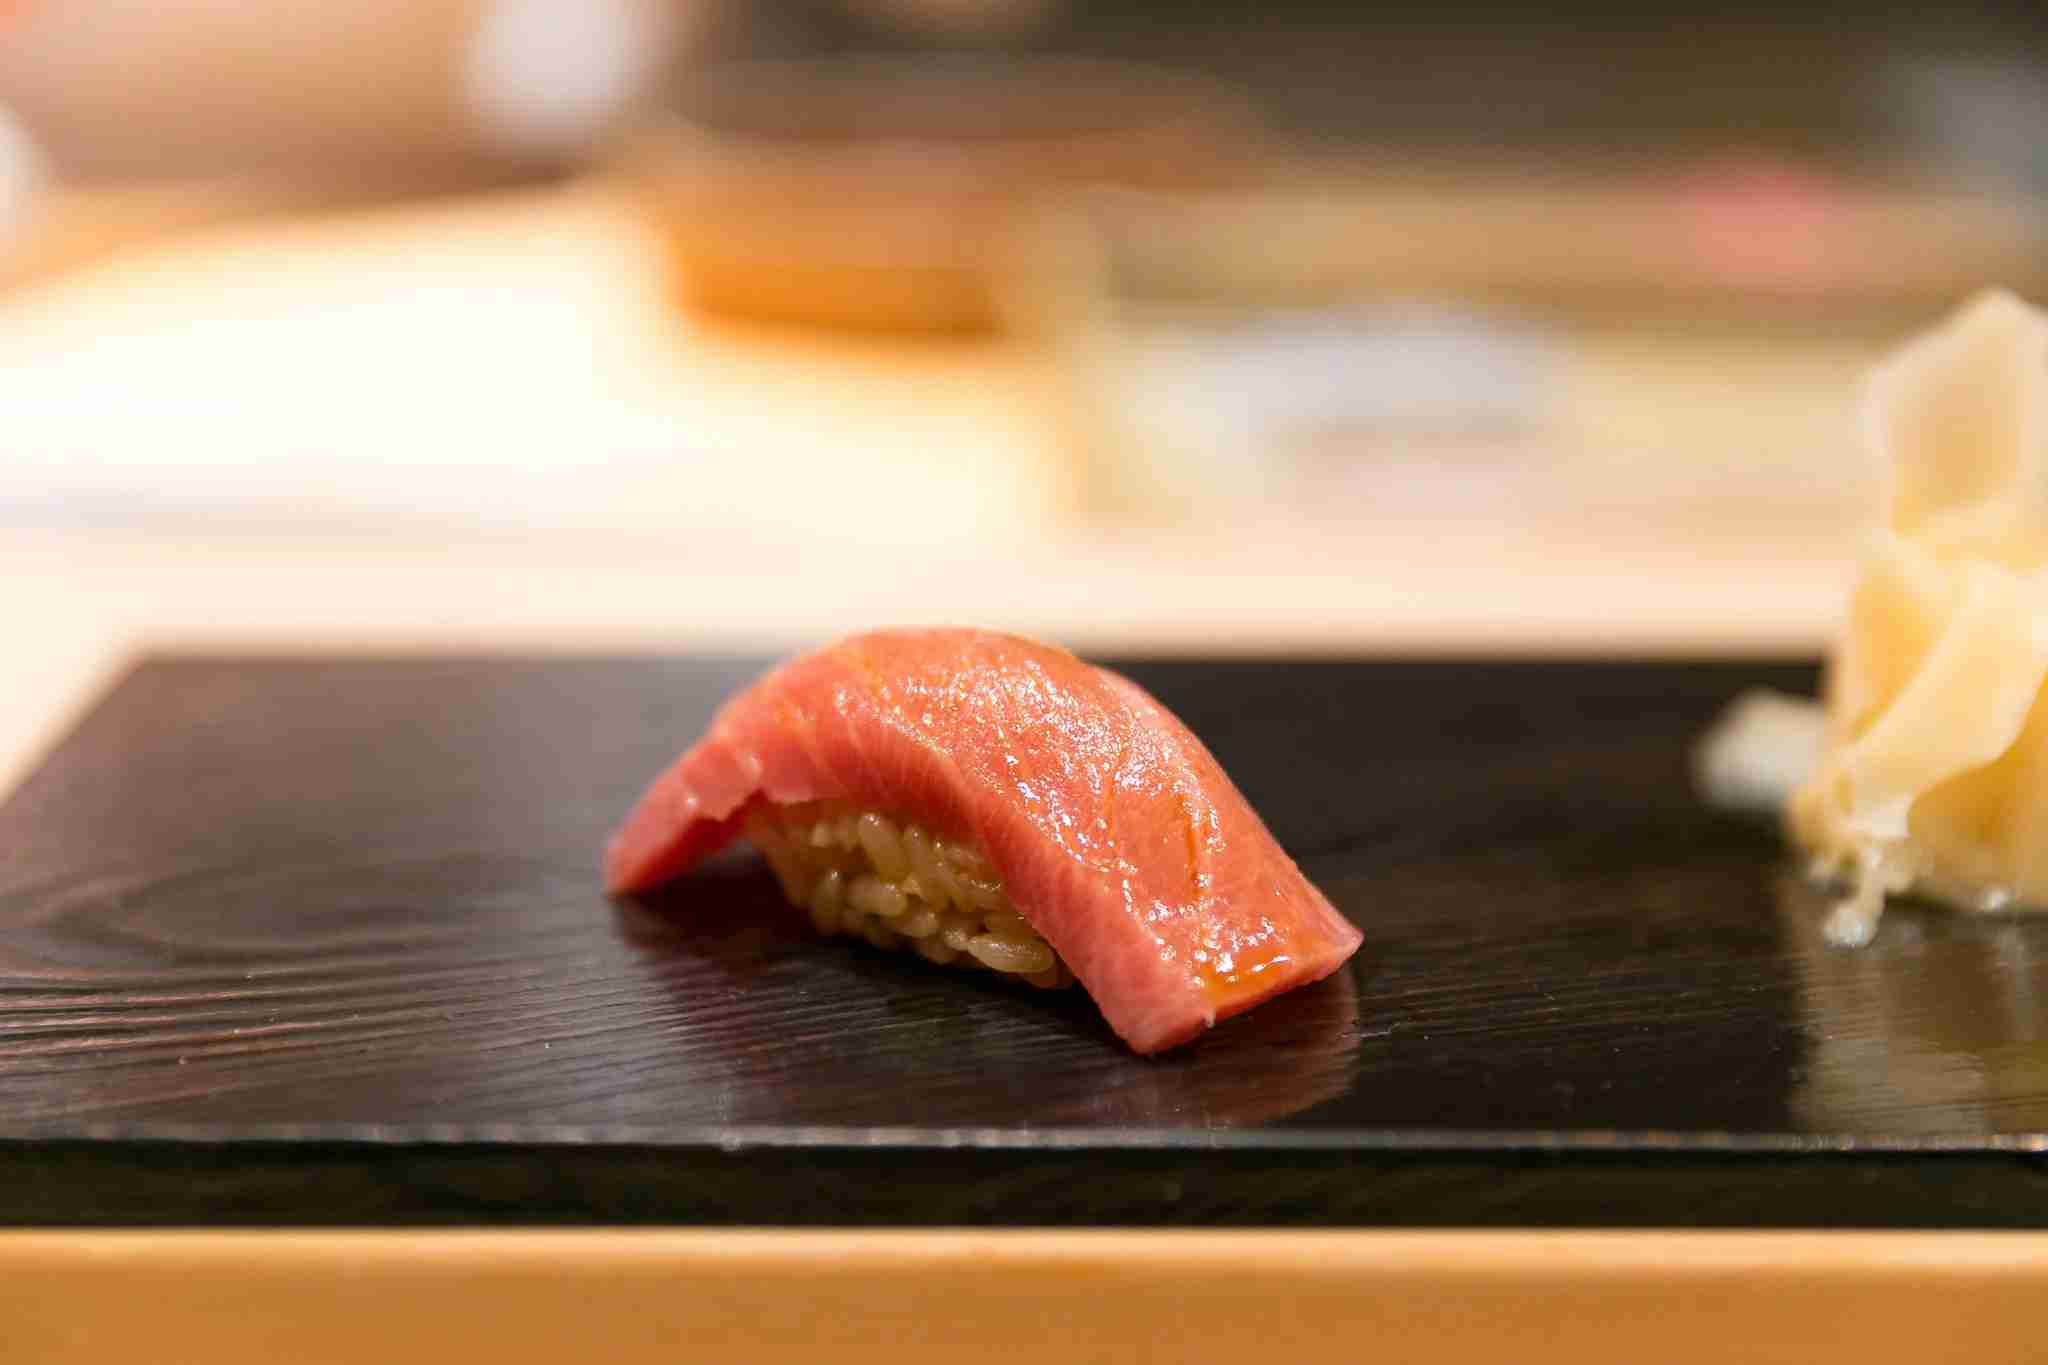 Tokyo is the place to get some deliciously tender <em>otoro</em>, or tuna-belly, sushi. Image by City Foodsters/Flickr.